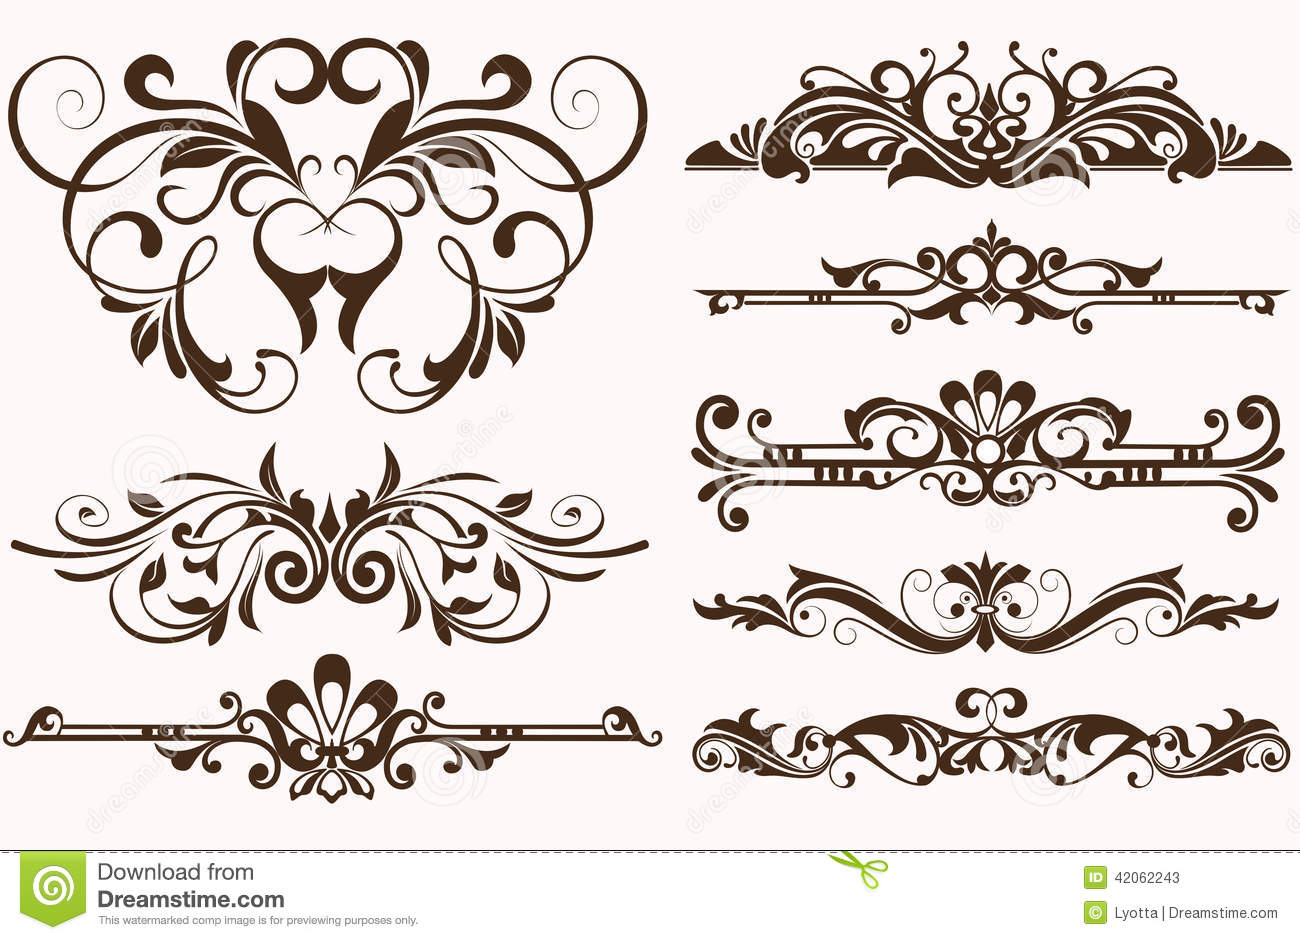 Vintage Frames And Corners With Delicate Swirls In Art Nouveau For Decoration Design Works Floral Motifs Style Beautiful